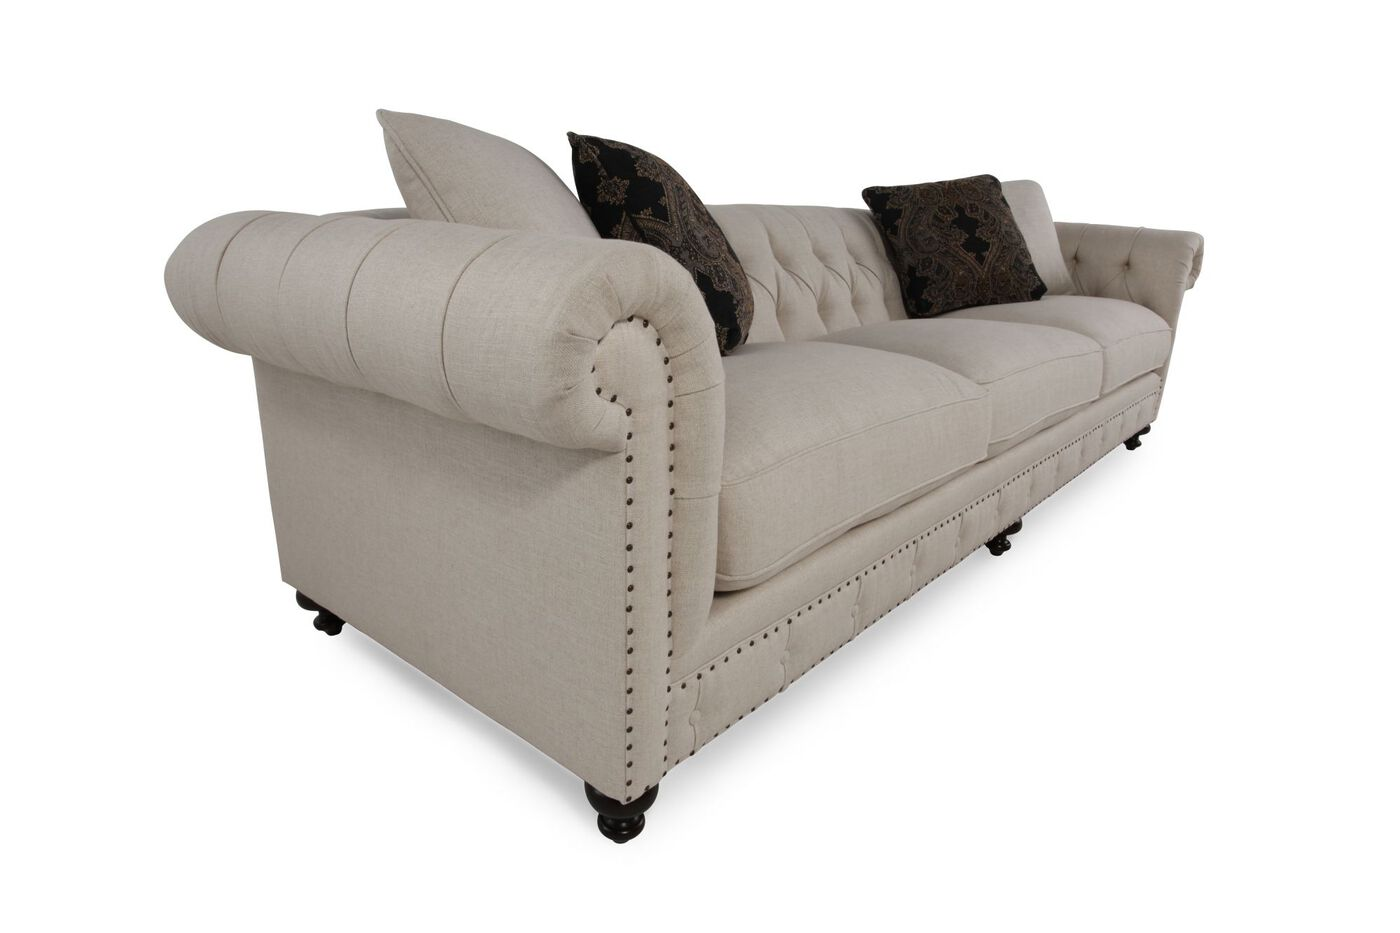 Bernhardt riviera large sofa mathis brothers furniture for Where to buy bernhardt furniture online